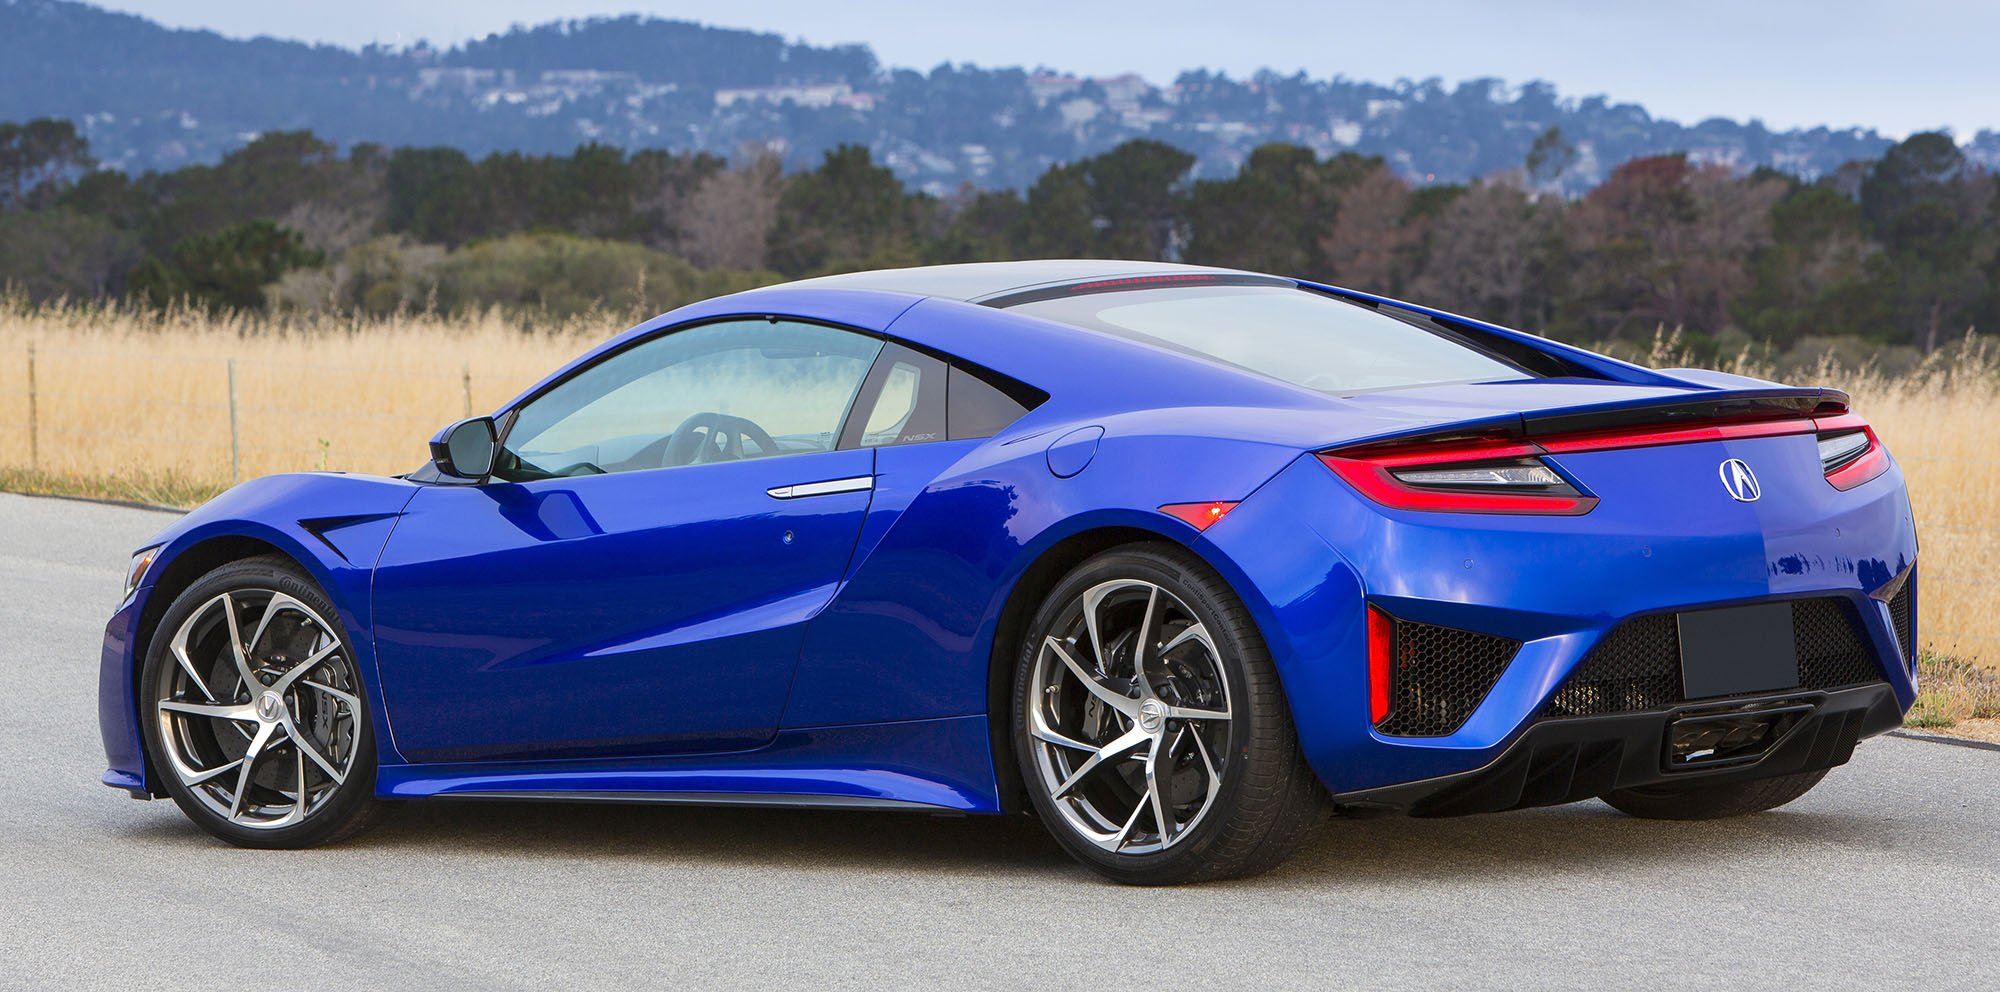 Honda Nsx Production Start Delayed Until 2016 Report